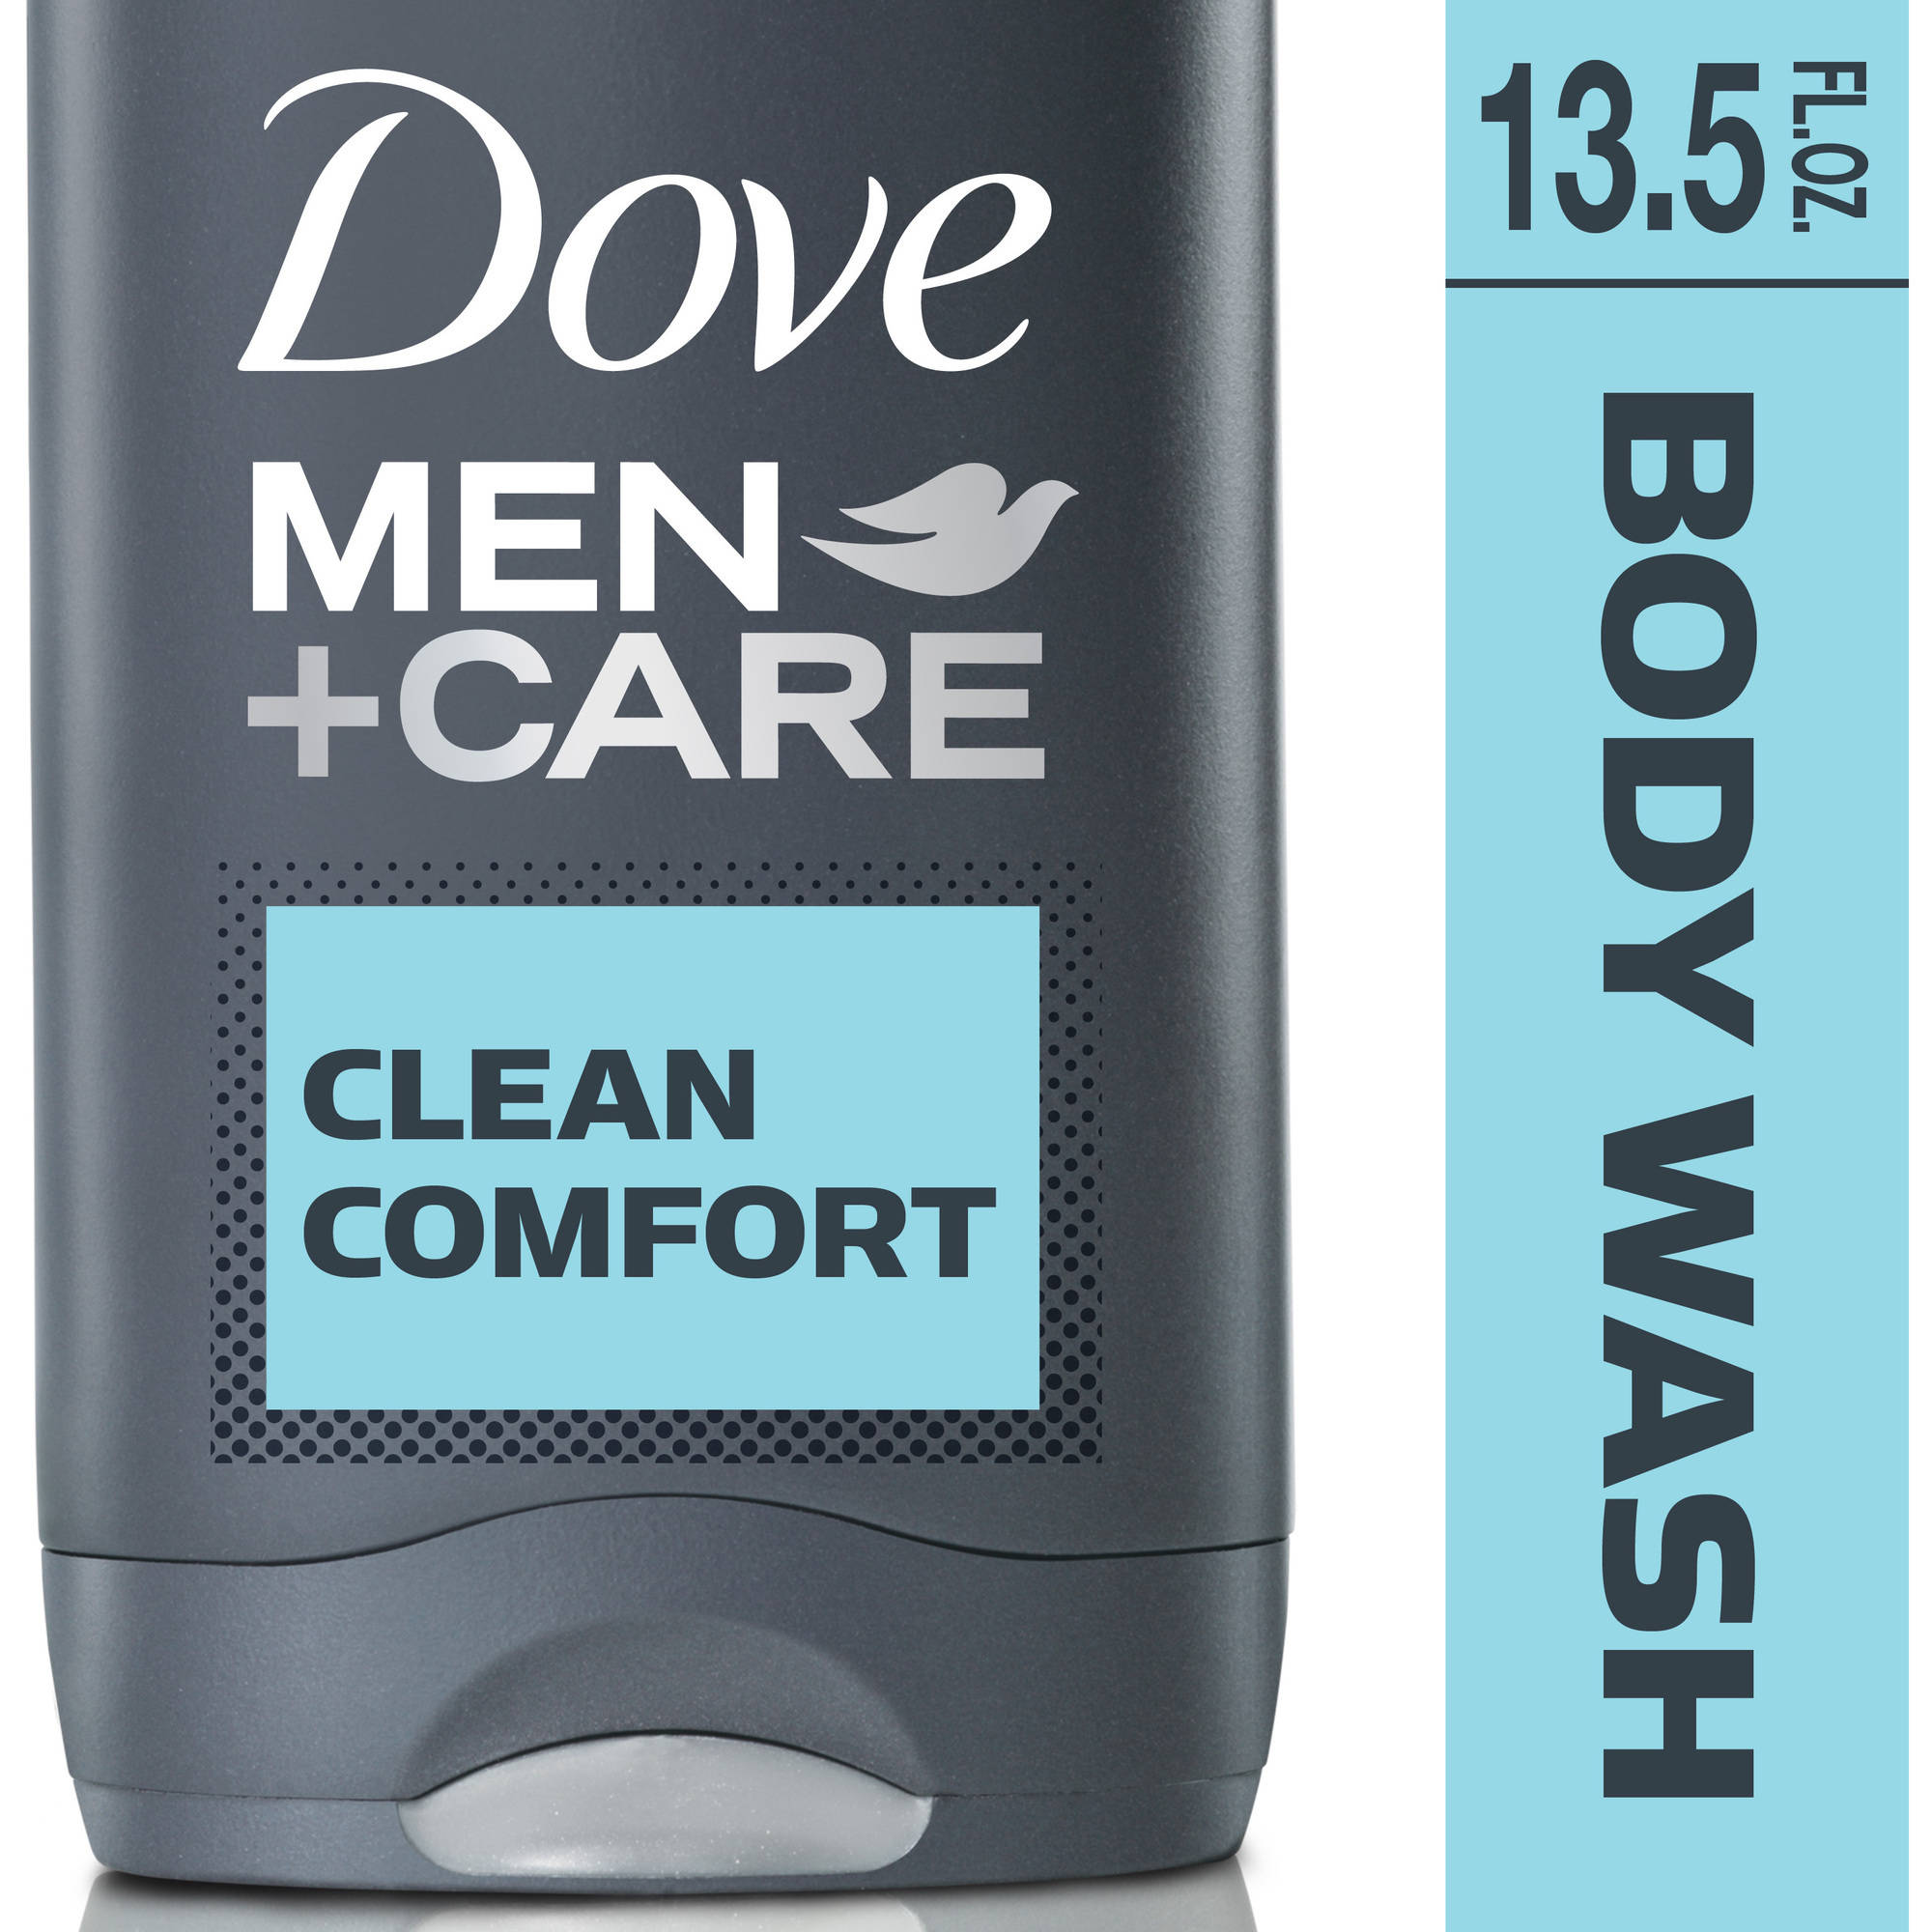 Dove Men+Care Clean Comfort Body and Face Wash, 13.5 fl oz